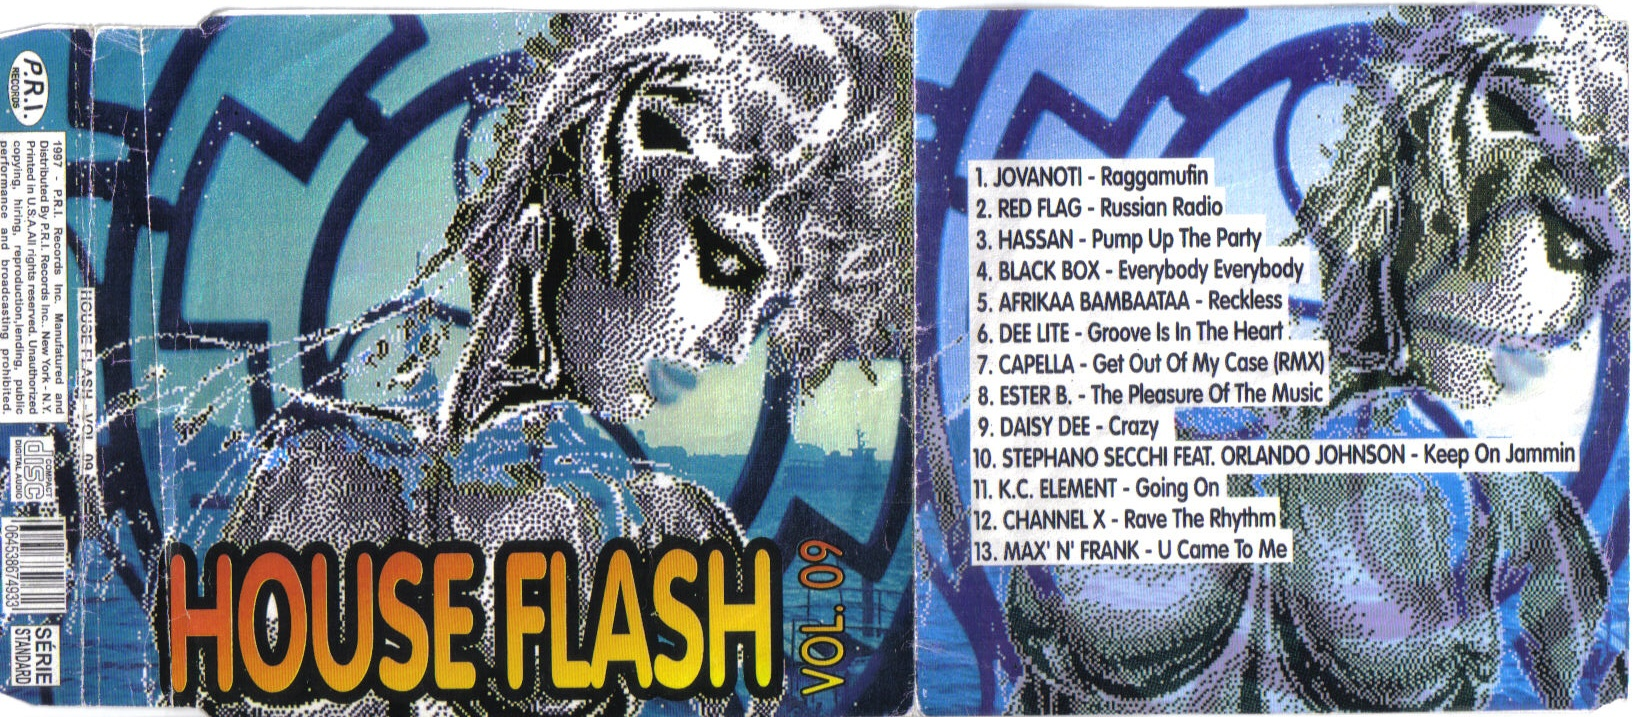 23/06/2016 - COLEÇÃO HOUSE FLASH DO VOL 01 AO 64 Oigcwo